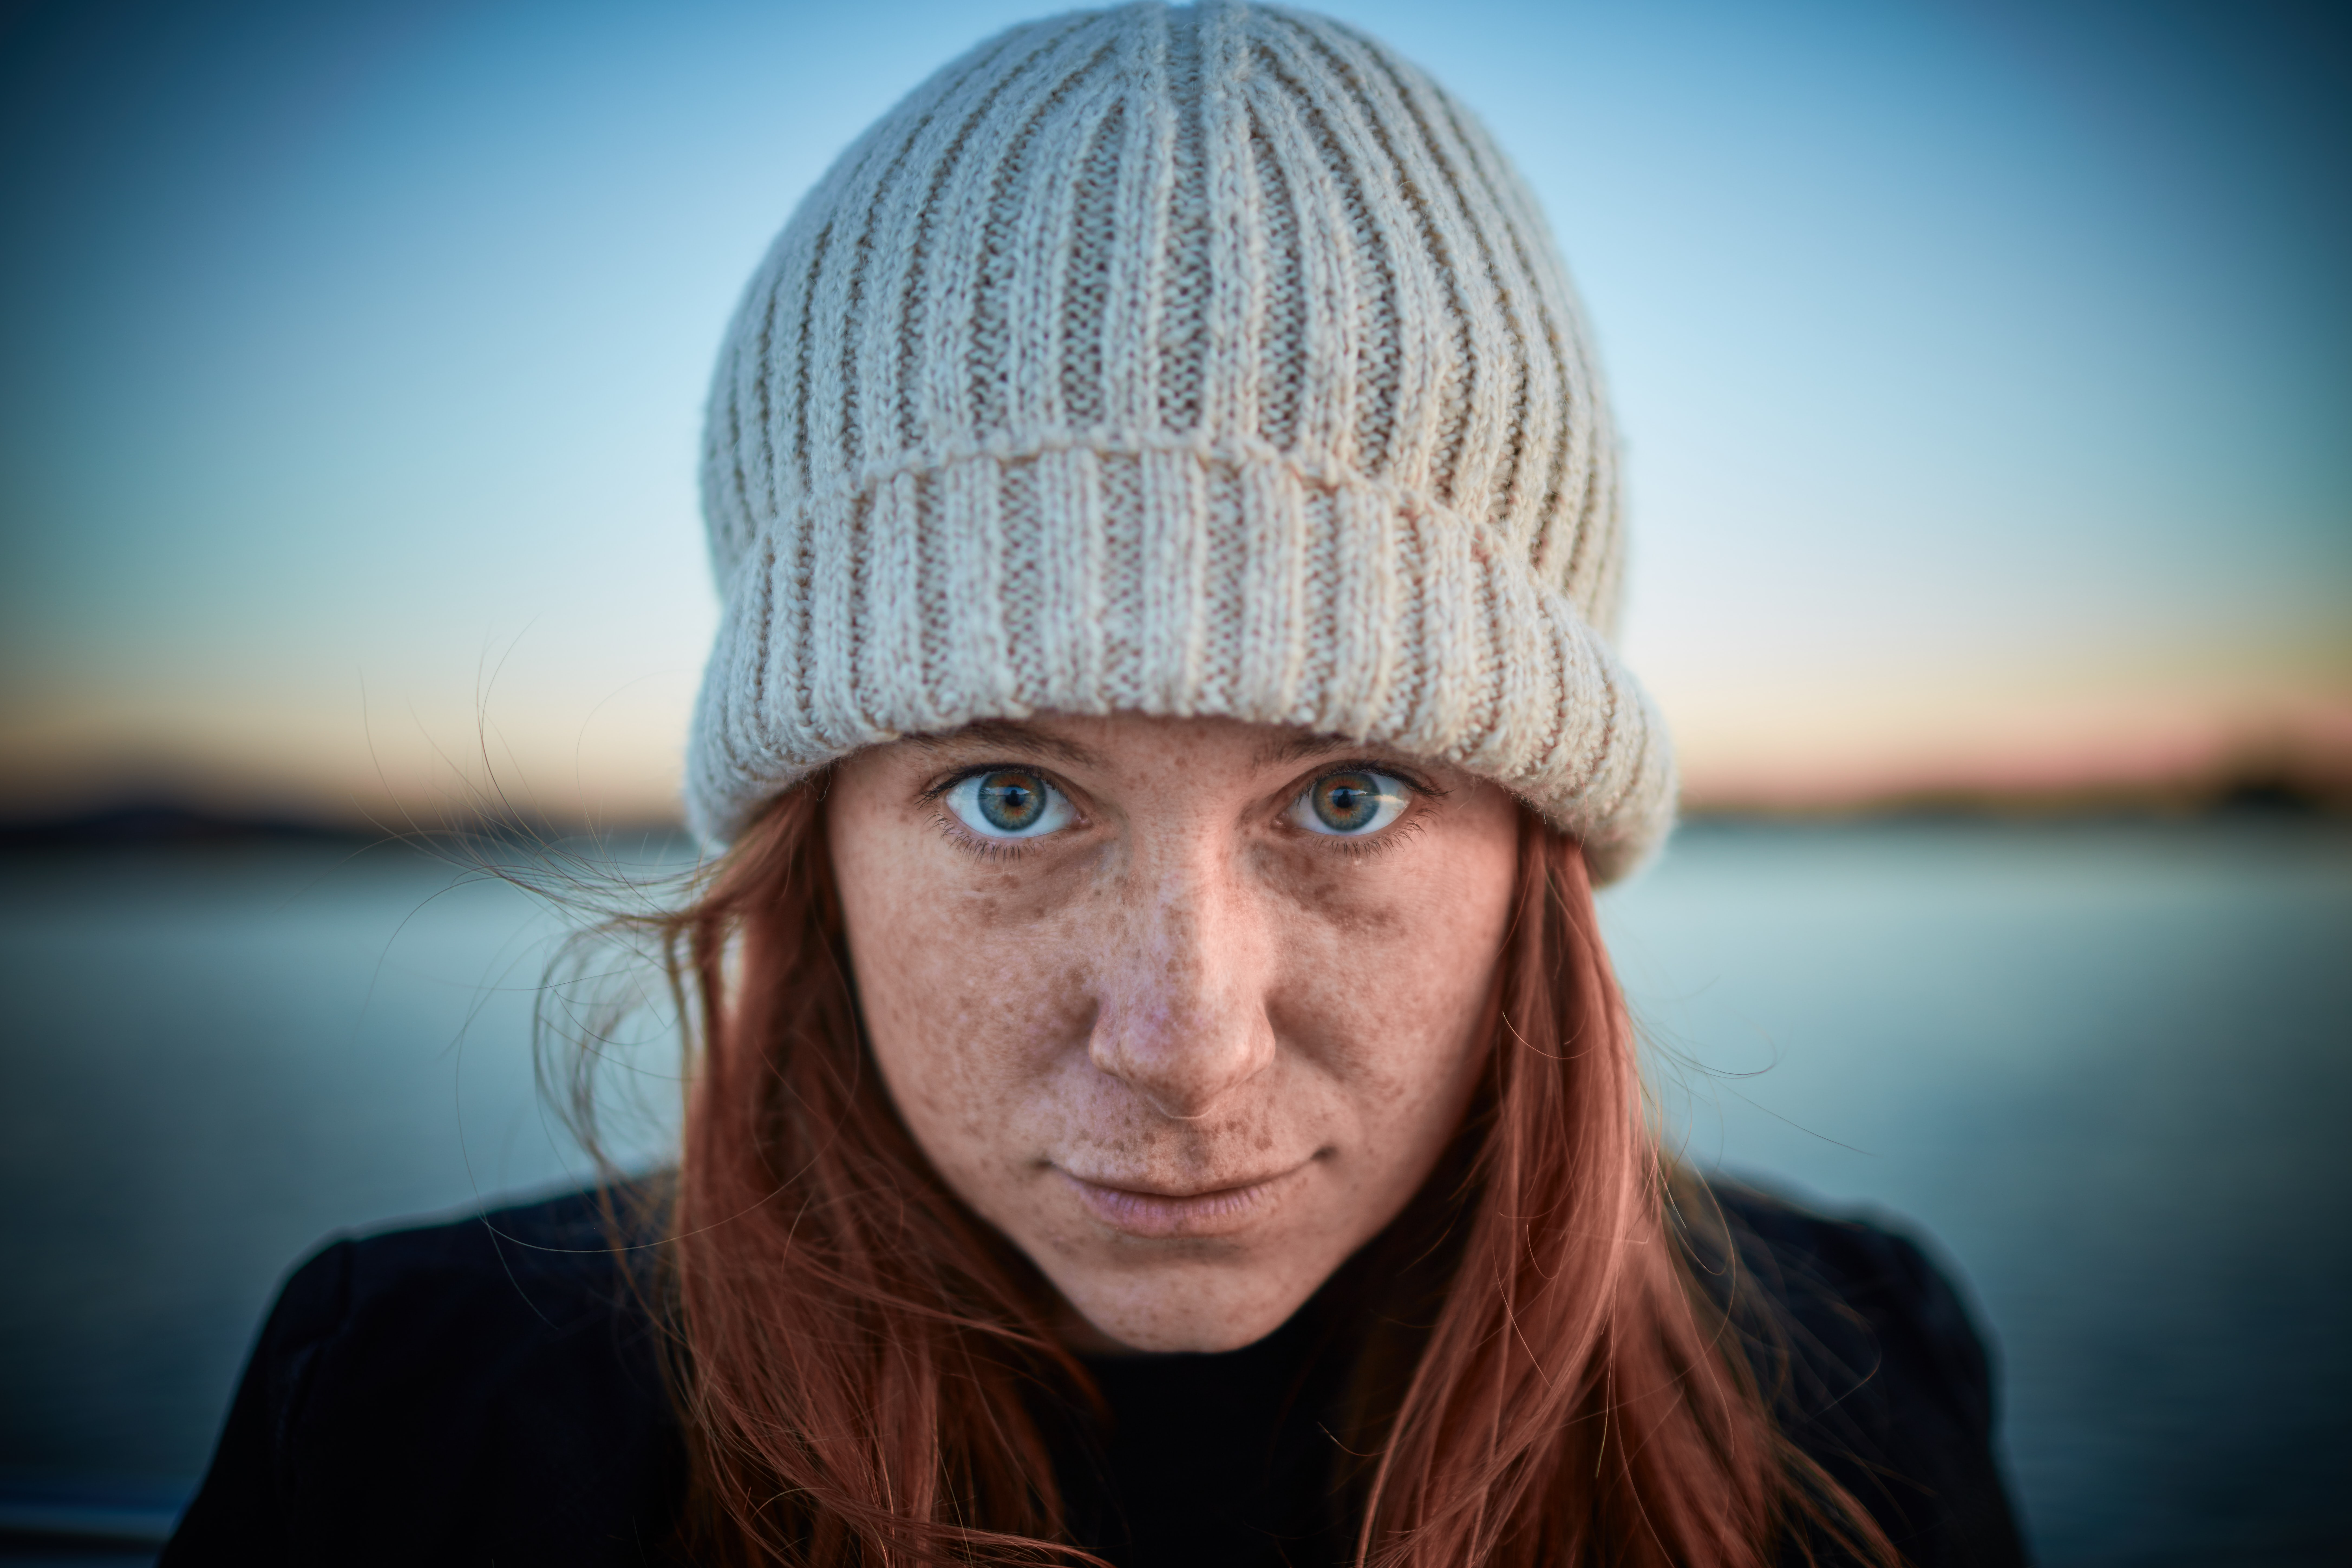 A redheaded woman with freckles and beautiful eyes wearing a grey knit hat at Smith Mountain Lake